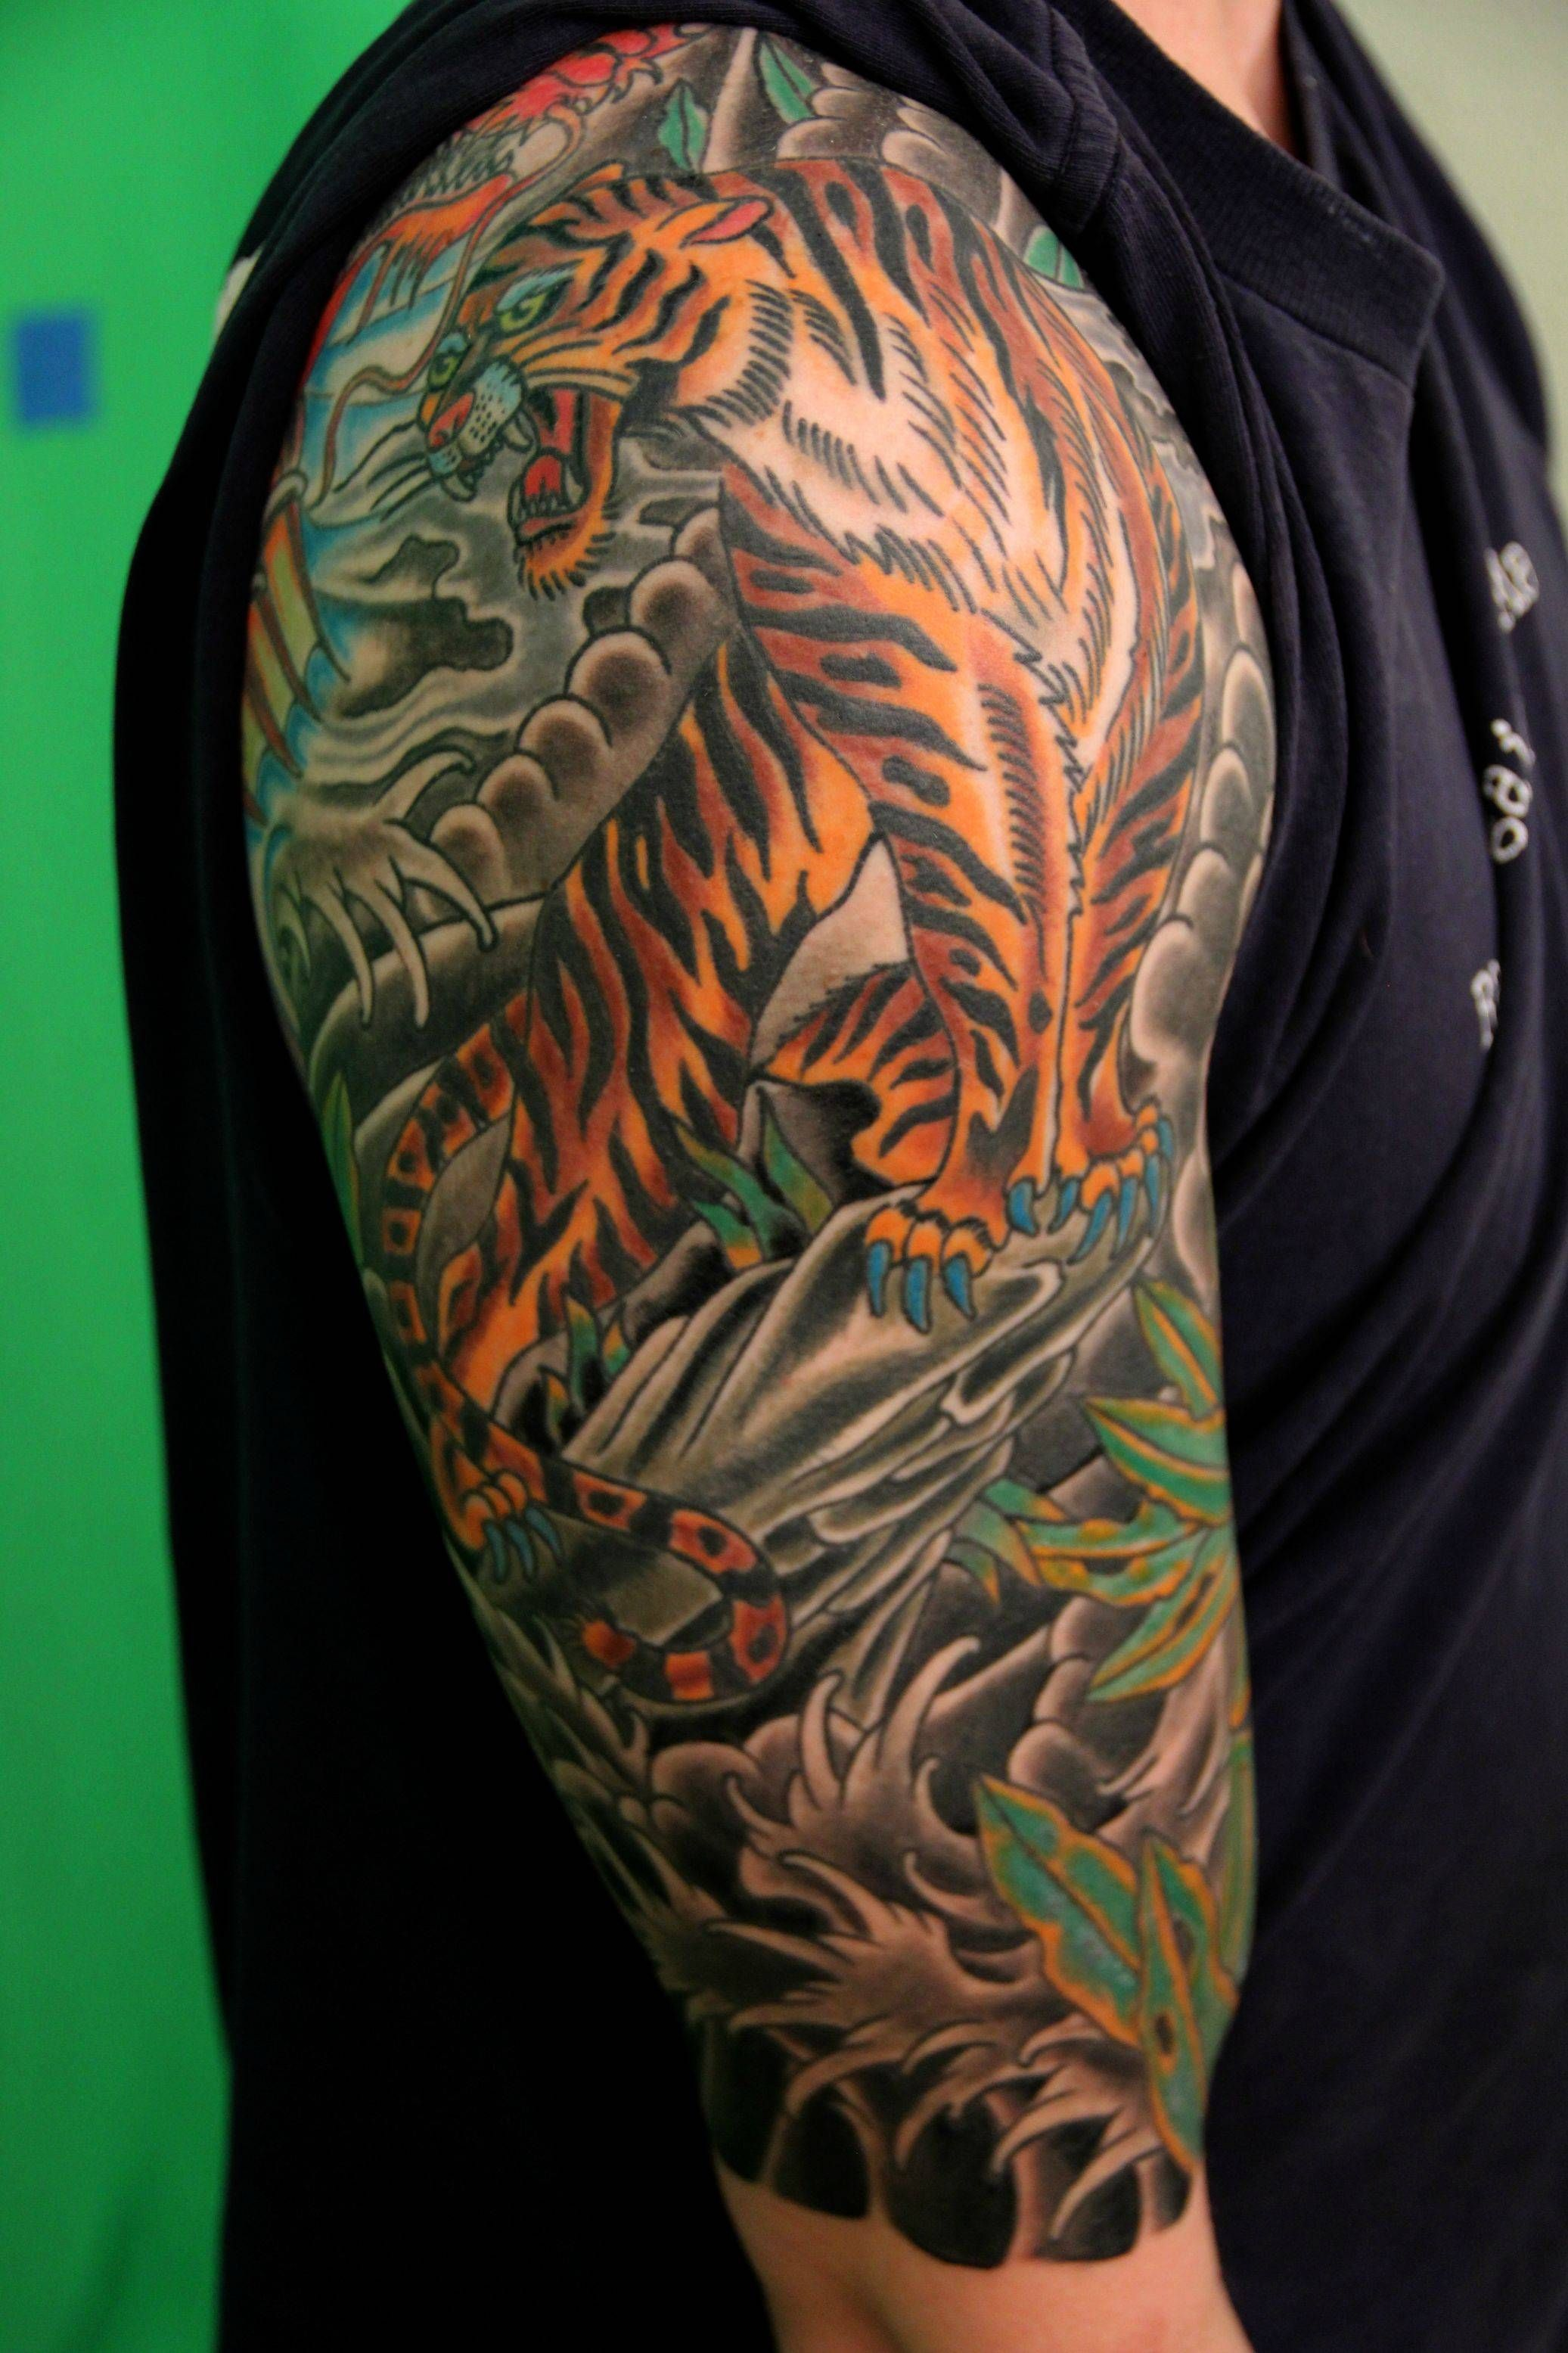 25 Half Sleeve Tattoos Design Ideas For Men And Women Japanese Tattoo Designs Quarter Sleeve Tattoos Tattoo Sleeve Designs